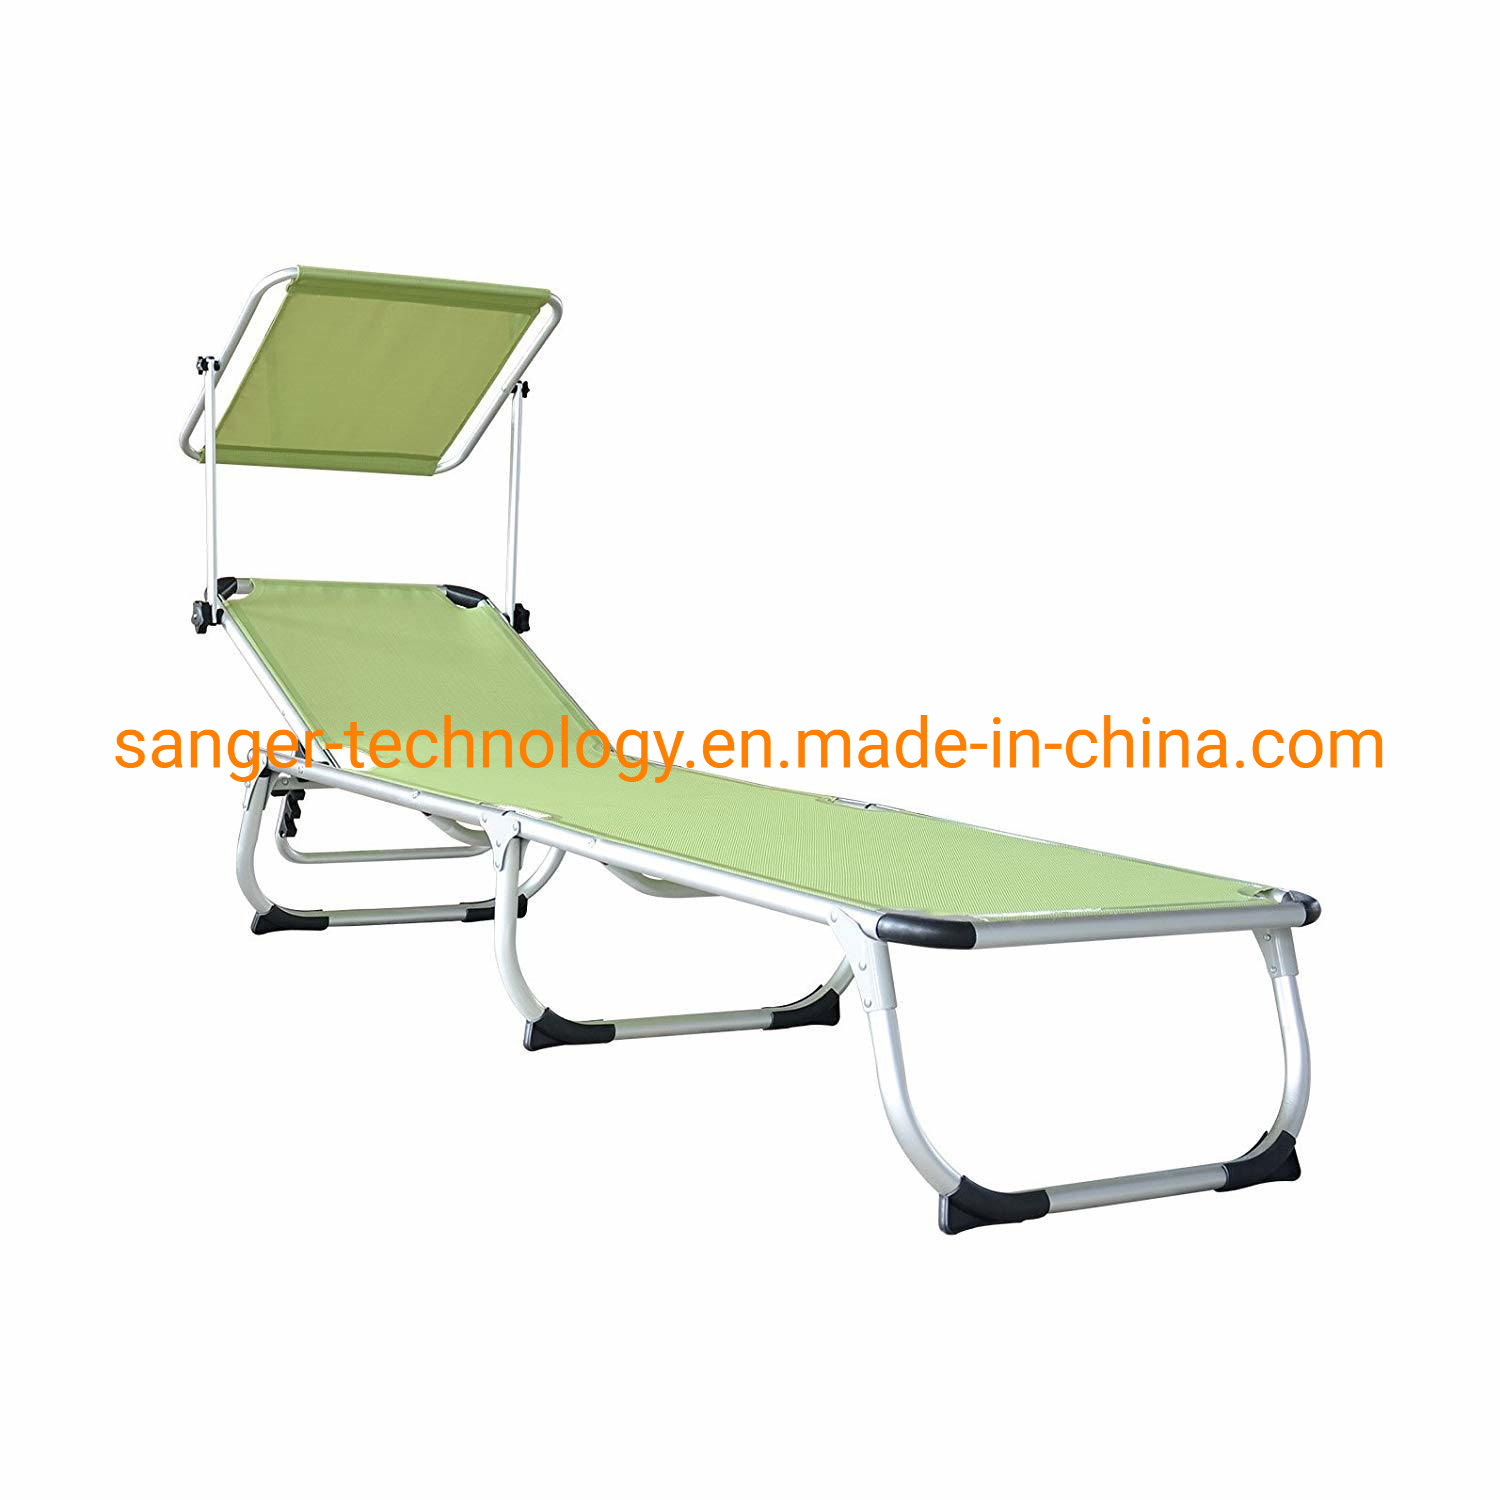 Hot Item Patio Chaise Lounge Chair With Sun Shade Folding Zero Gravity Free Recliner Adjustable Beach Relax Chair For Camping Support 300 Lbs